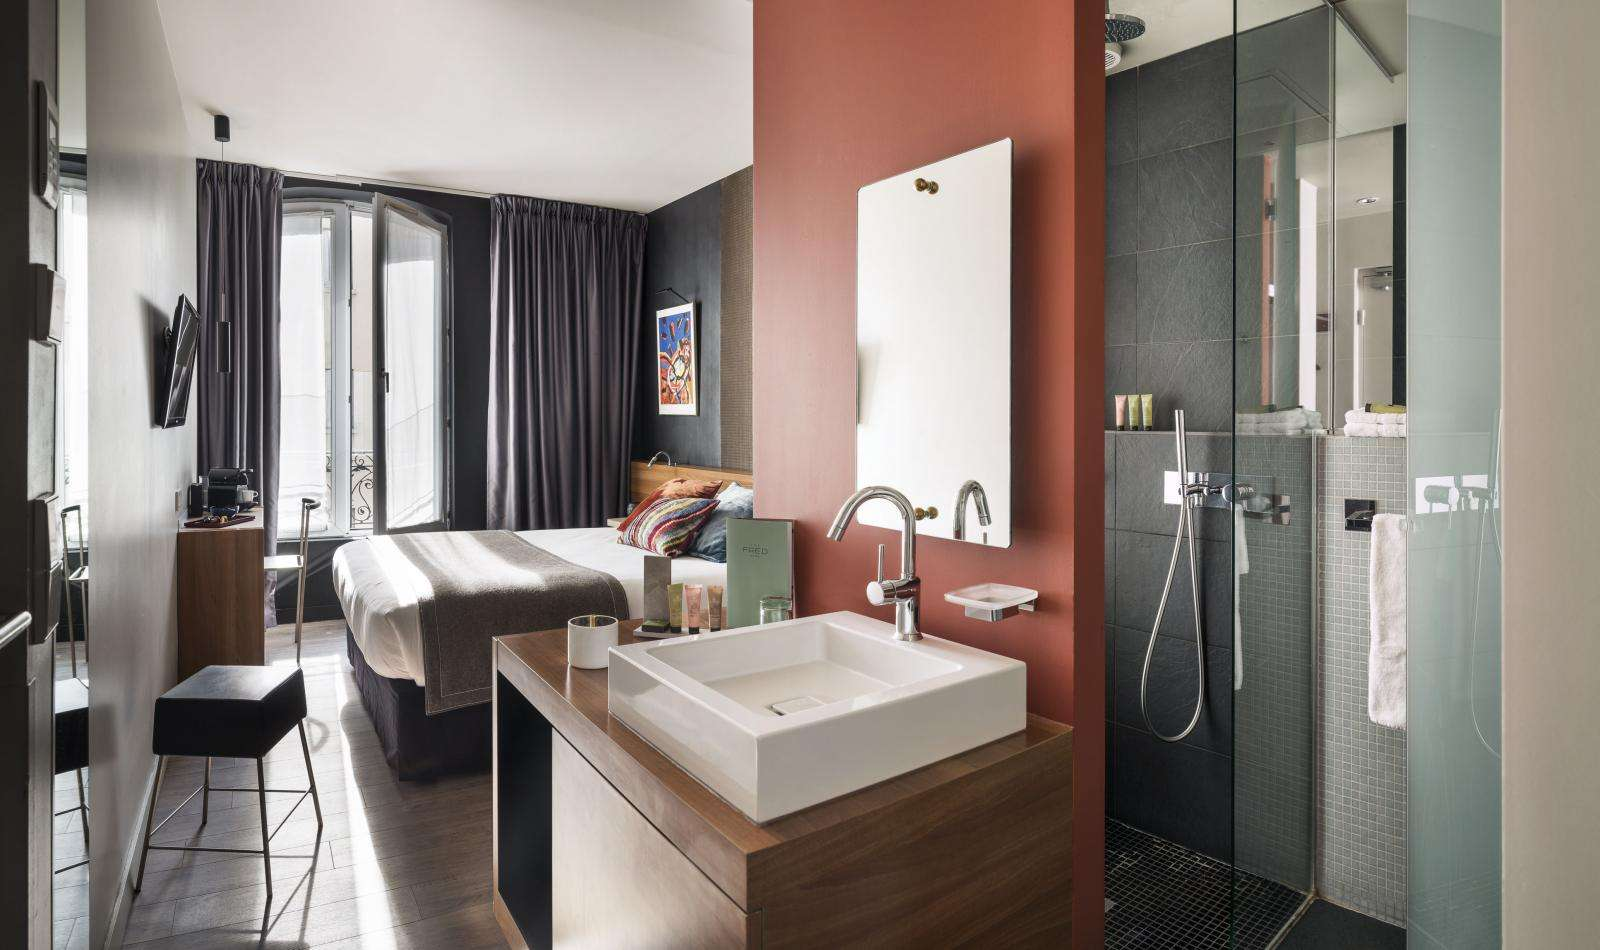 Photos Of Our Star Hotel And Its Rooms Fred Hotel Paris Montparnasse - Fred's floor tile